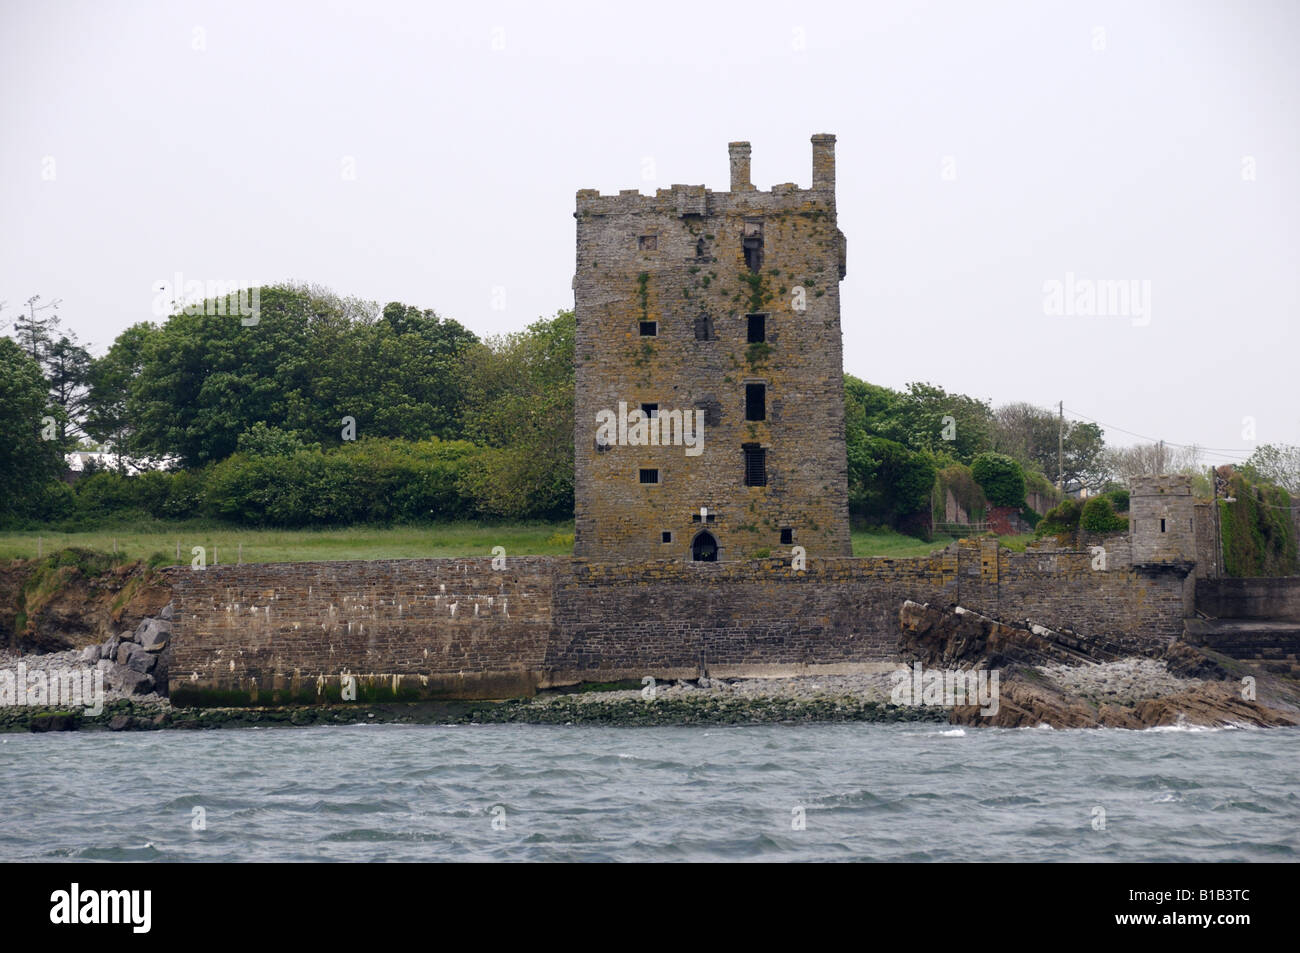 Ruin of a castle stands on the Atlantic coast of western Ireland. - Stock Image